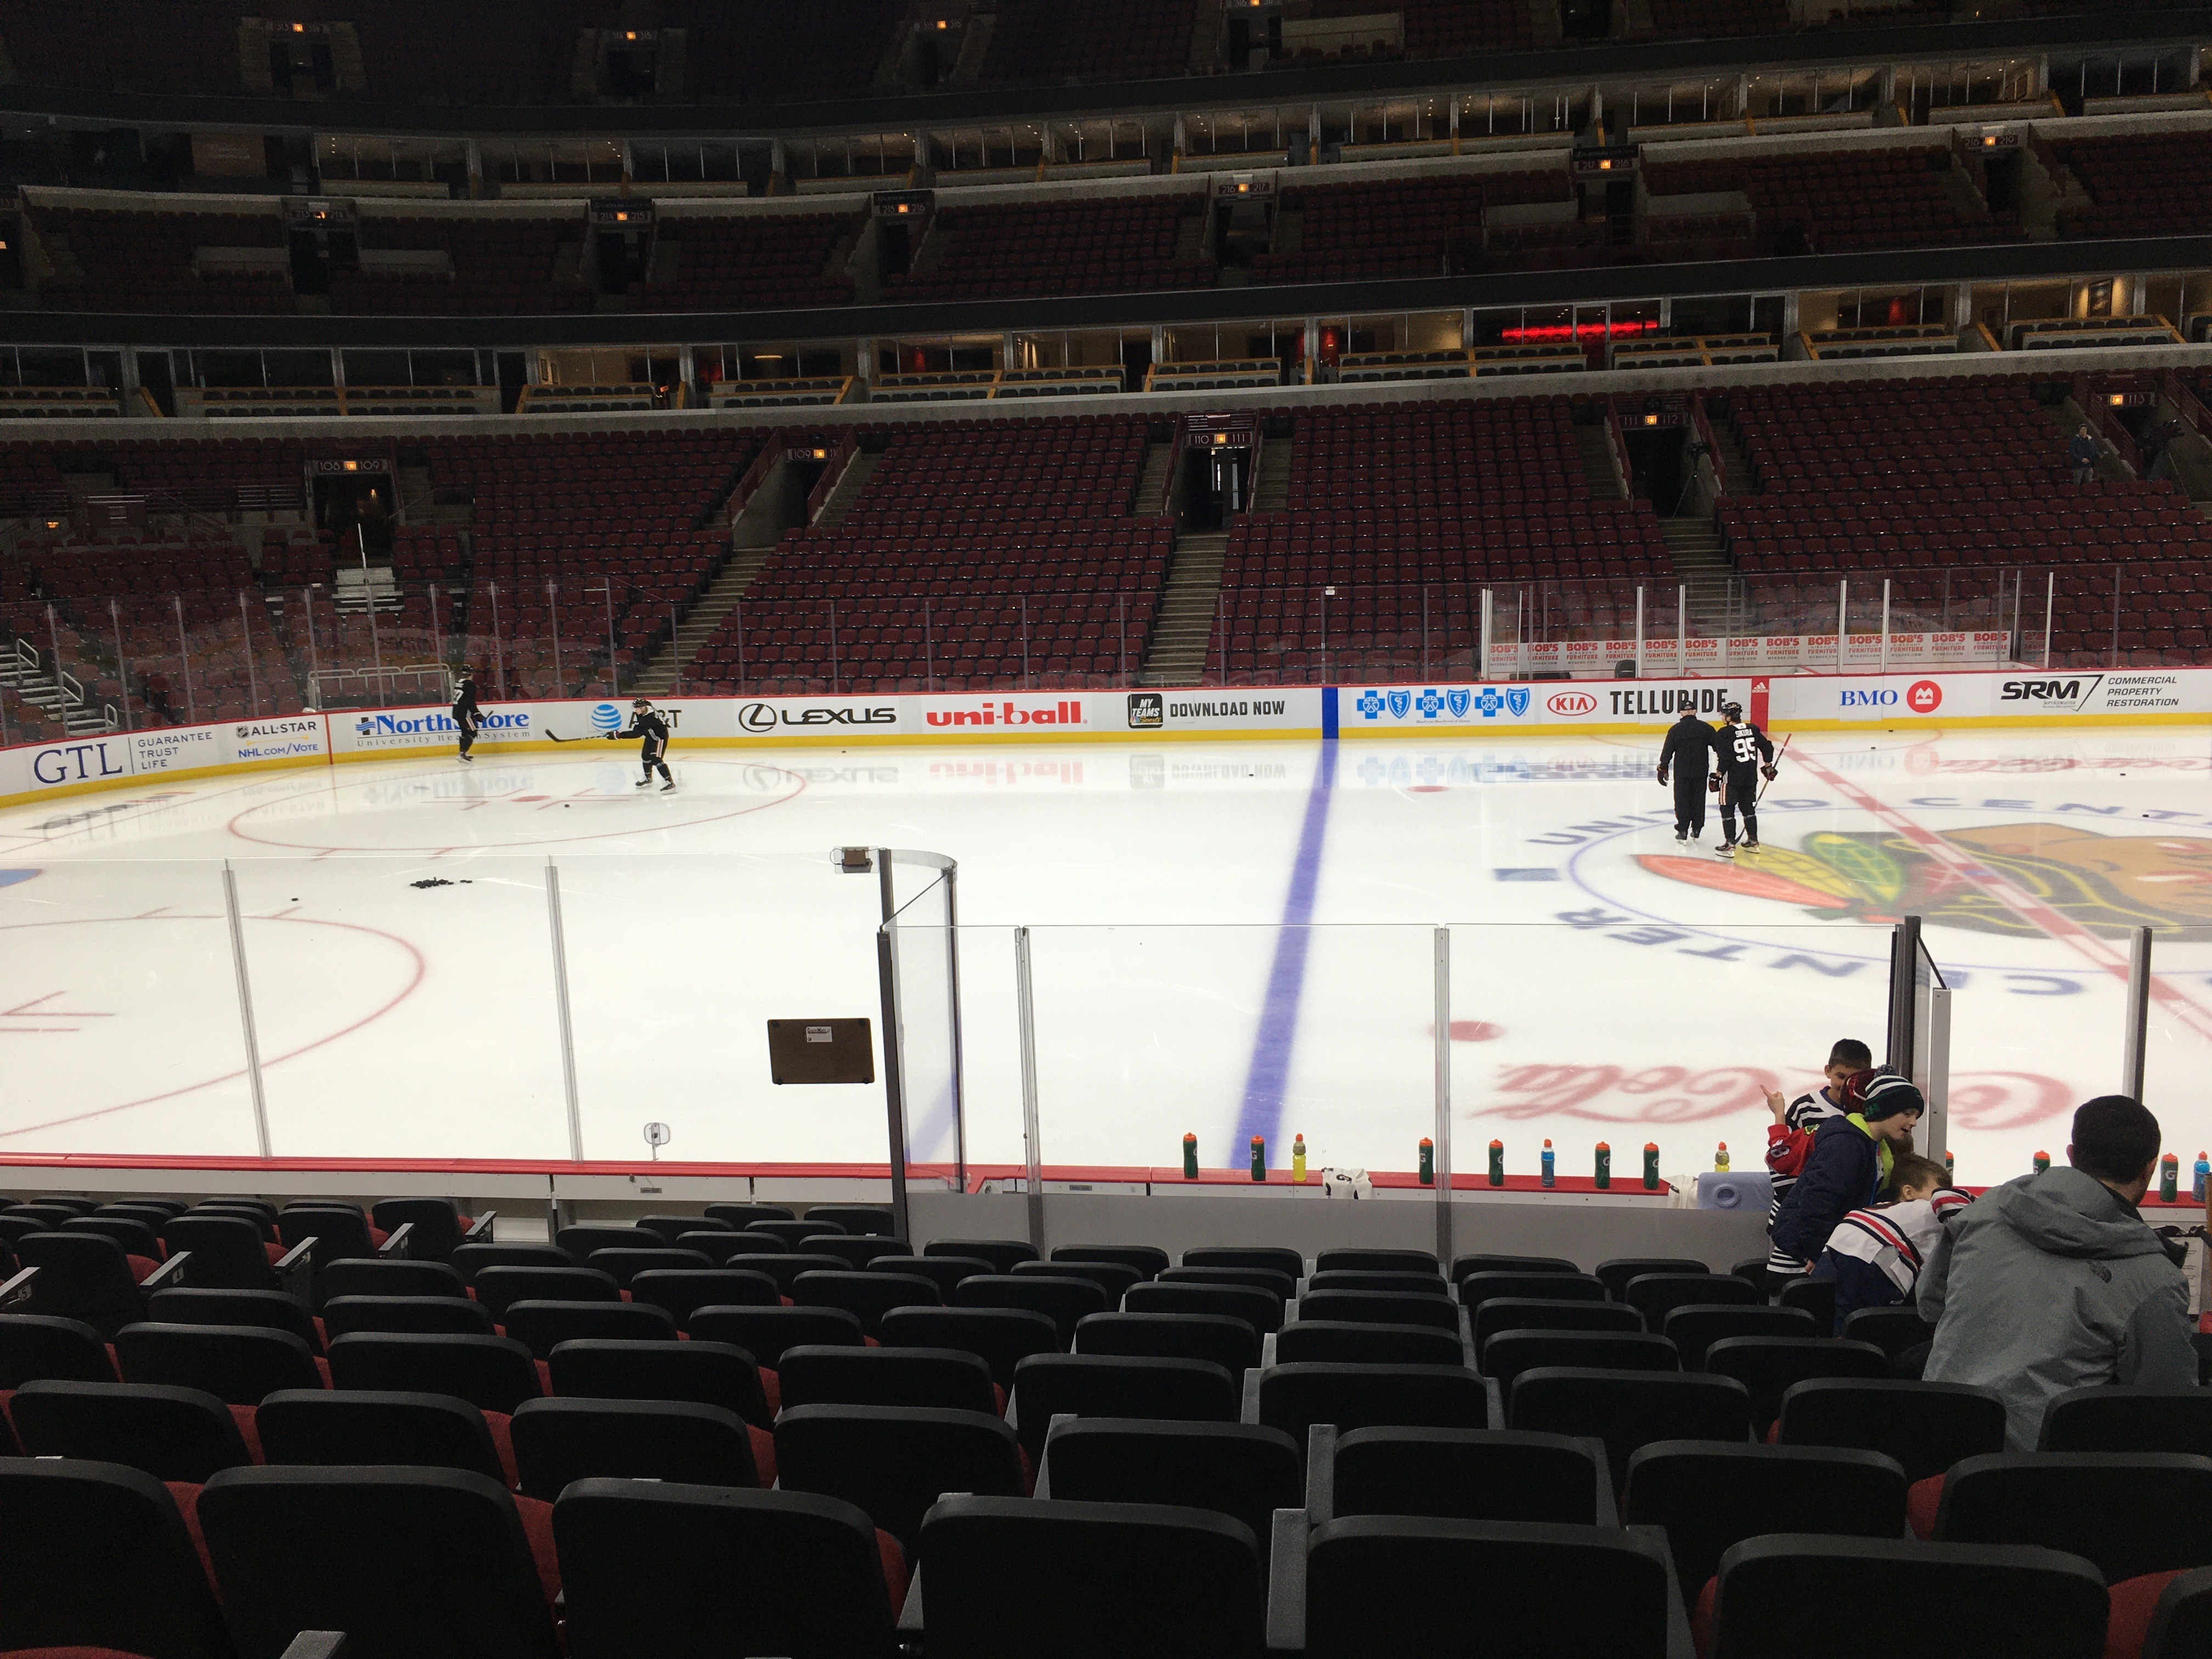 The Blackhawks are taking steps to reduce costs while hockey remains on hold.